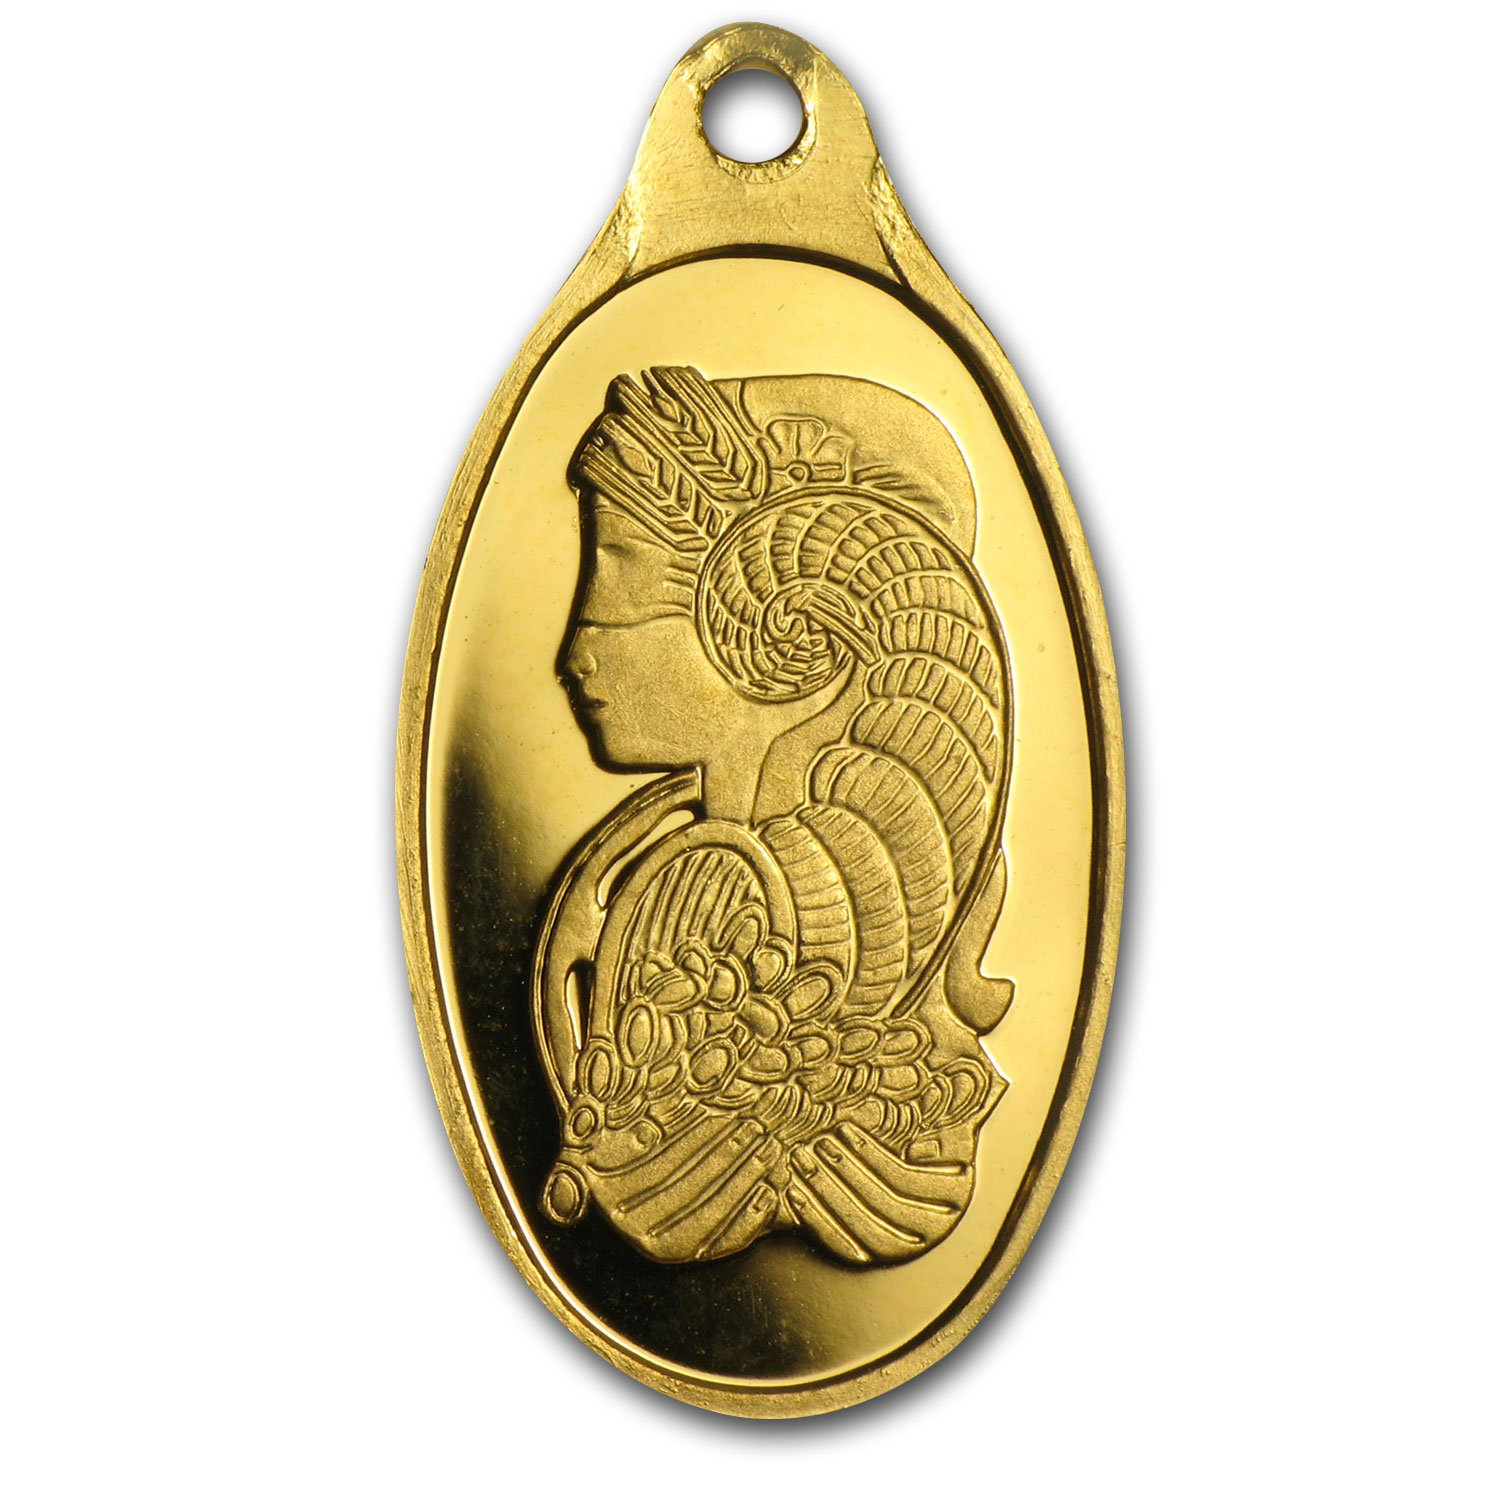 2 5 Gram Gold Pendant Pamp Suisse Fortuna Pamp